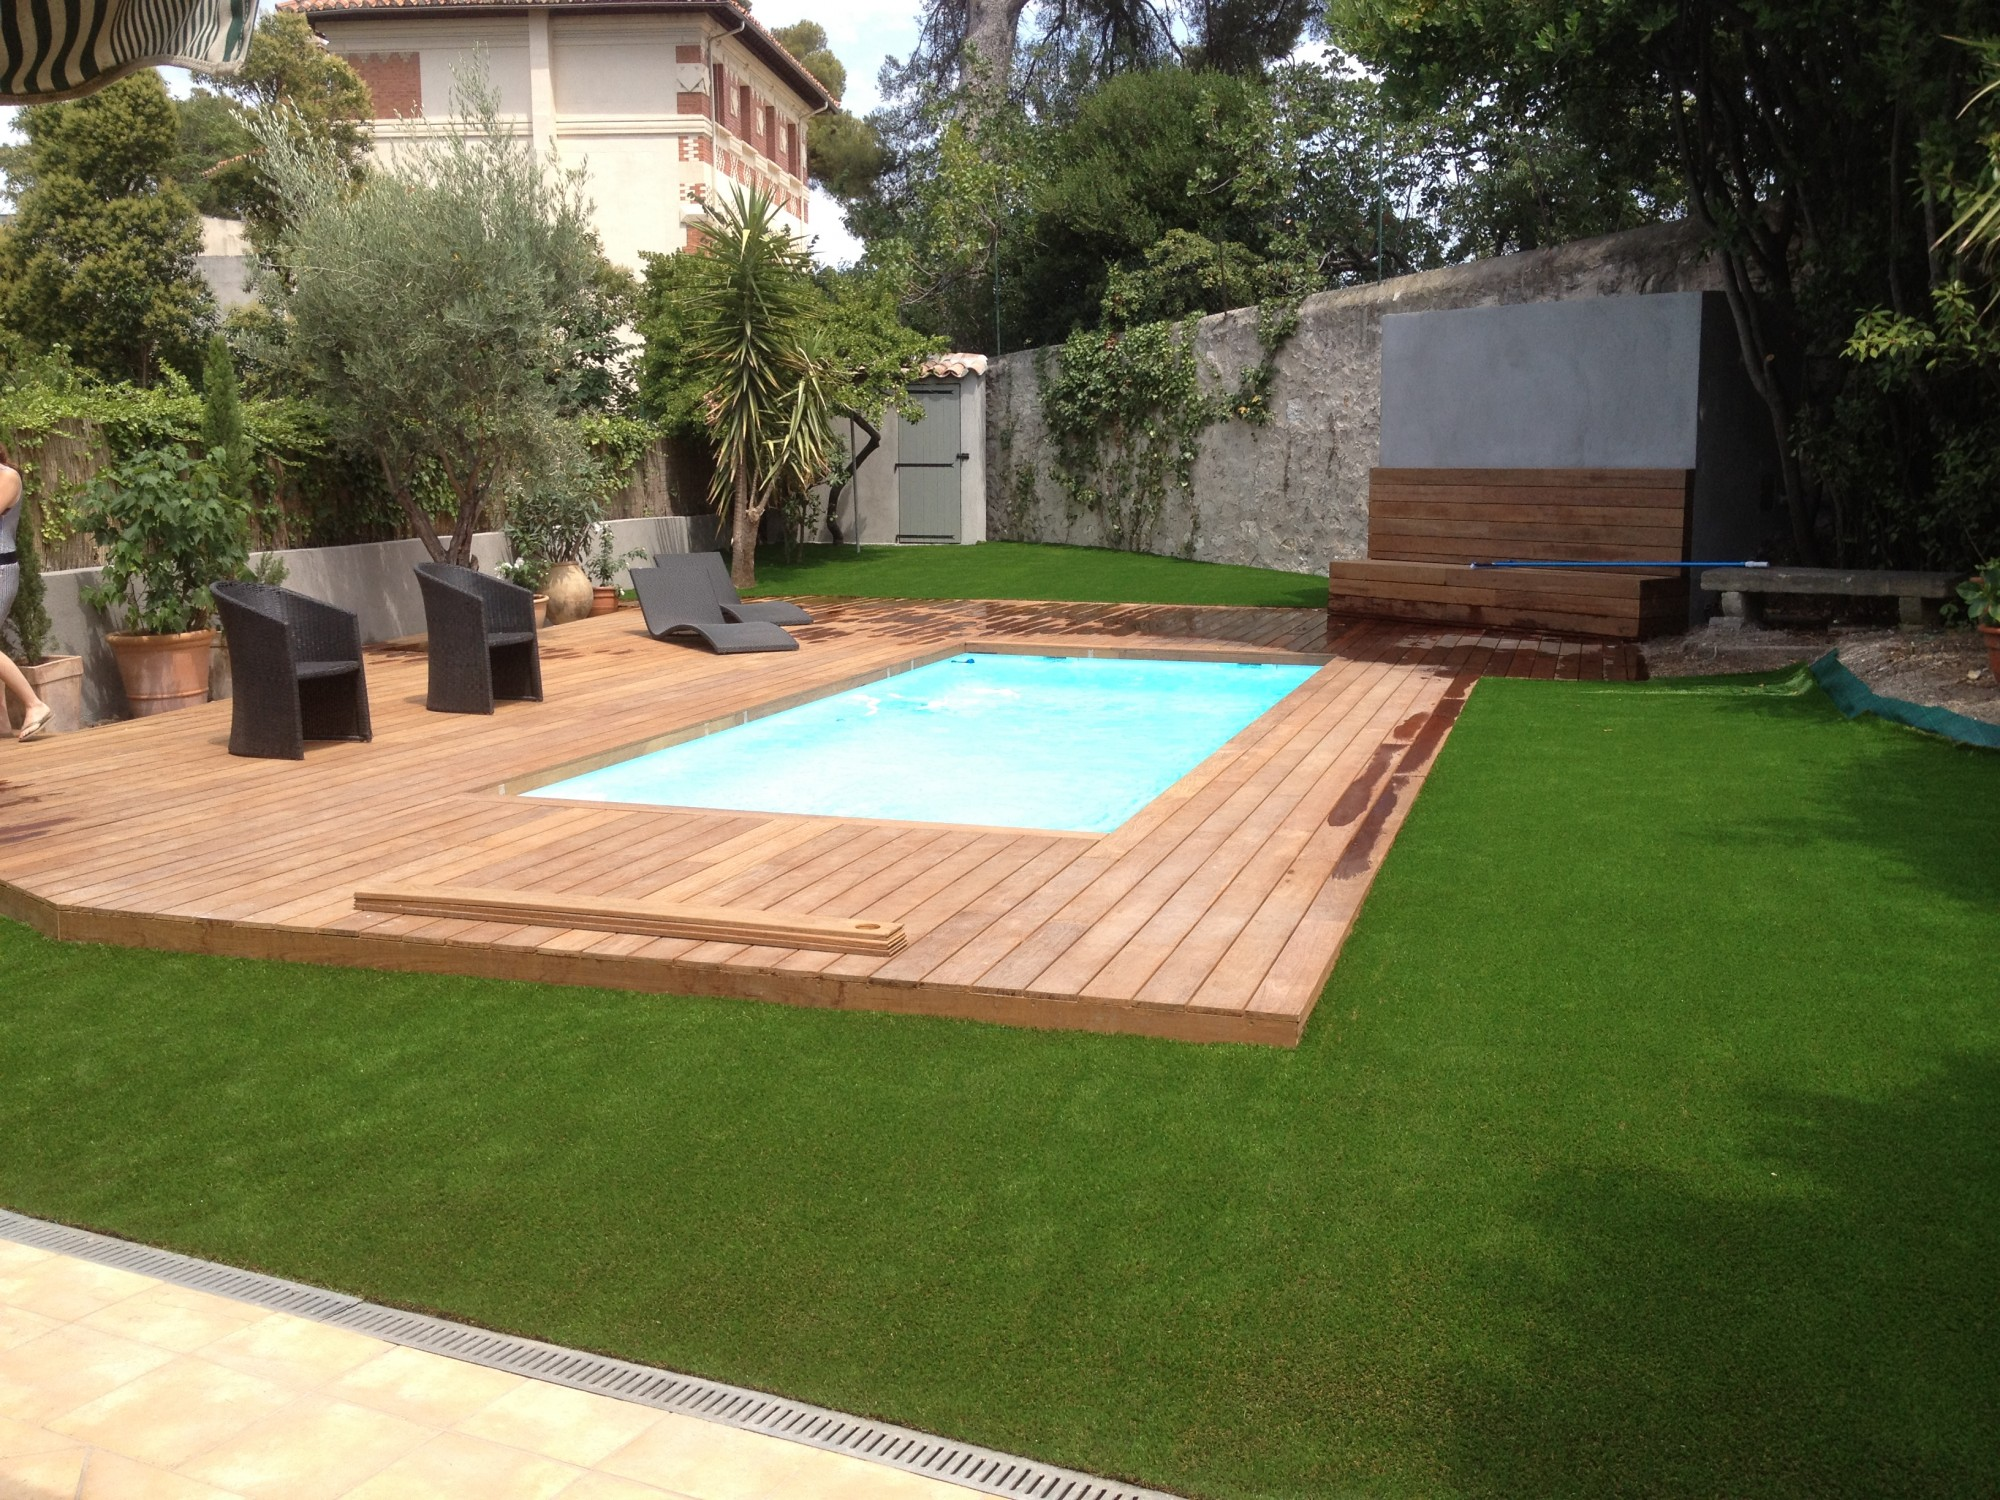 Pose gazon synthetique sur terrasse bois for Piscine et jardin marseille 2017